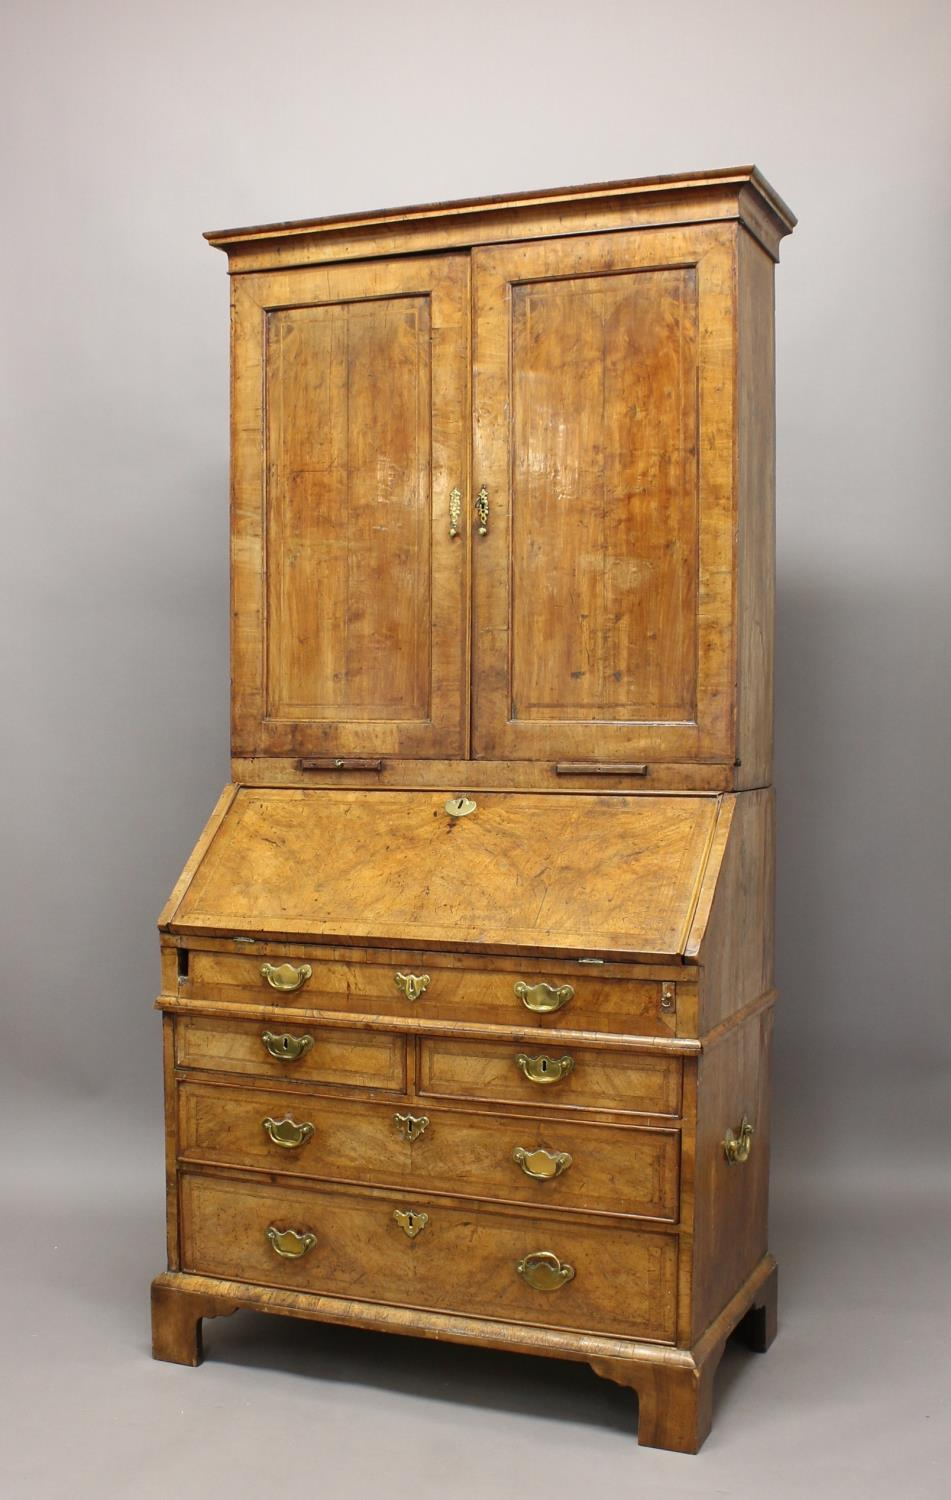 A GEORGE I WALNUT BUREAU CABINET. The upper section with a moulded cornice above twin panelled doors